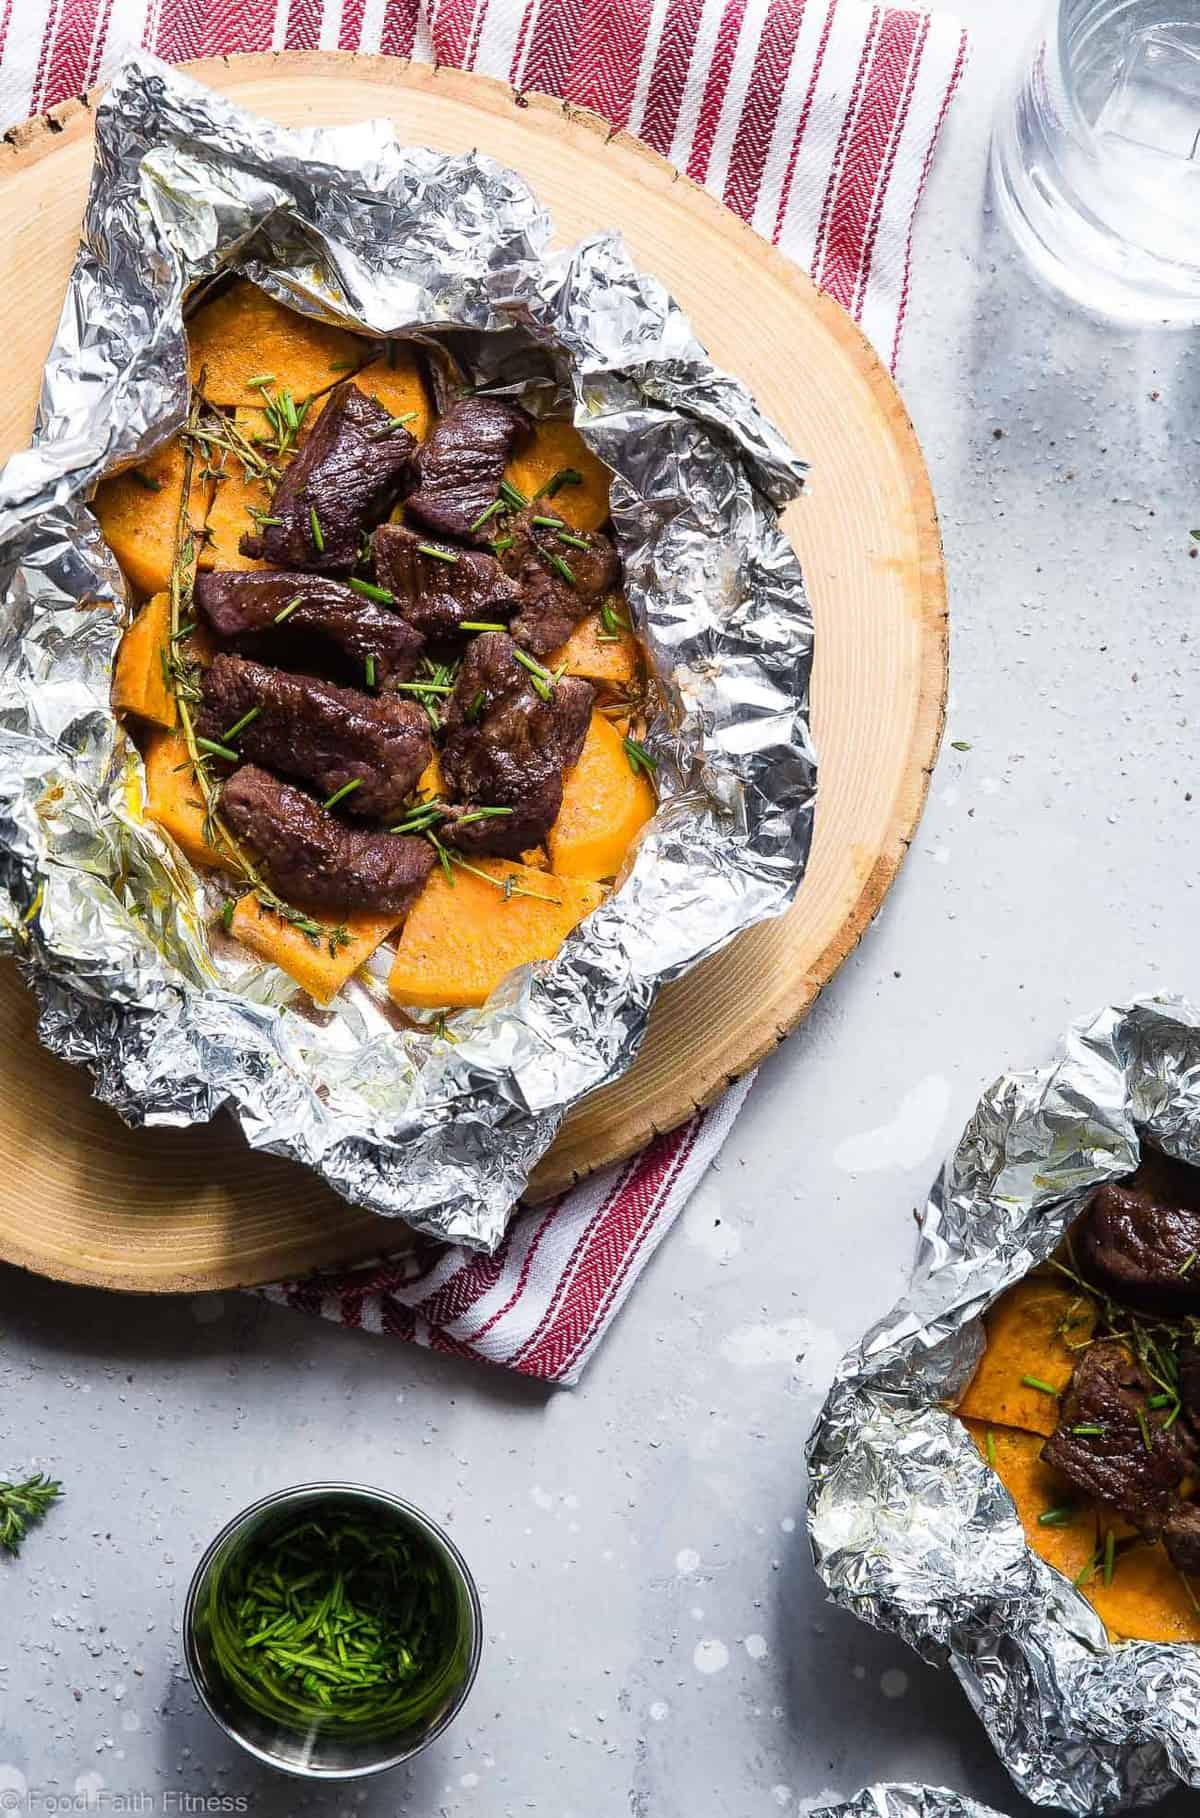 Garlic Steak and Potato Foil Packets -These EASY SteakFoil Packets are an easy, healthy and whole30 approved summer dinner with only 6 ingredients and 300 calories! Sure to please even the pickiest of eaters! | #Foodfaithfitness | #Glutenfree #Paleo #Whole30 #Grilling #Dairyfree